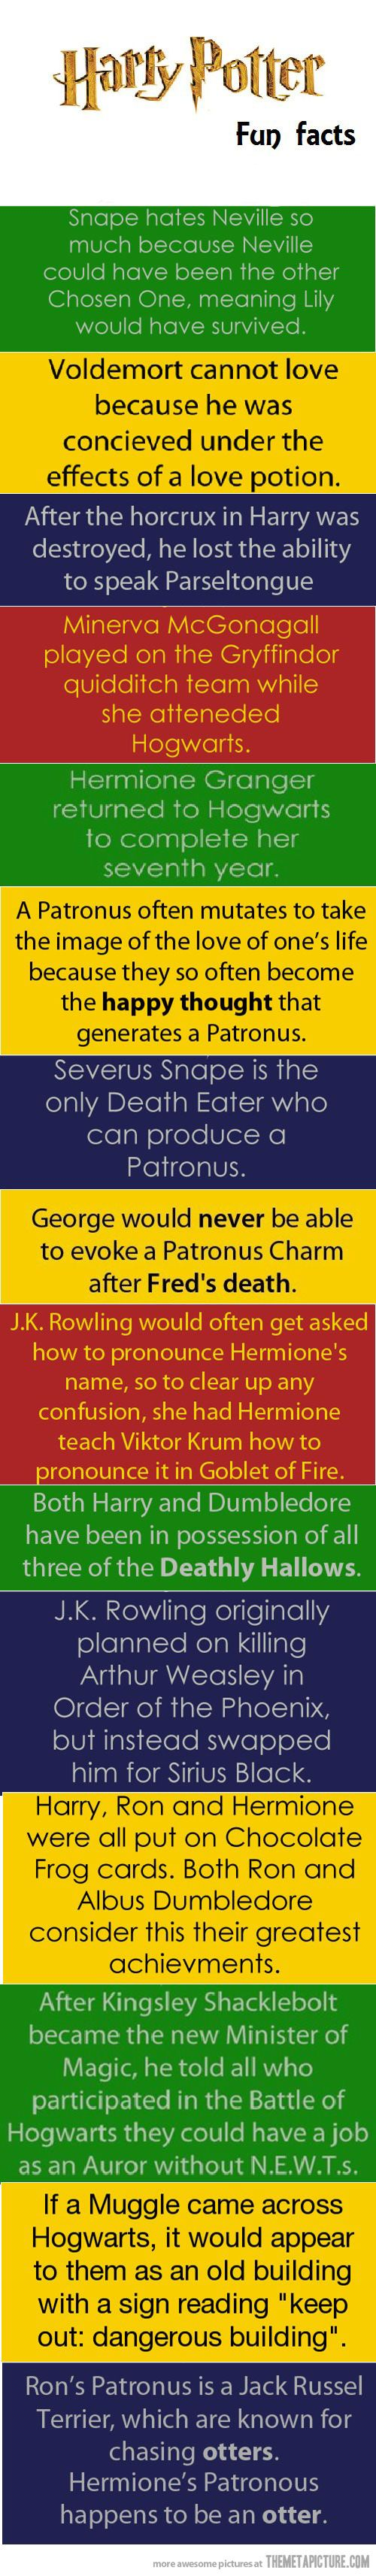 Harry Potter fun facts: Books, Stuff, Potterfact, Hp Facts, Potter Fun, Harry Potter Facts, Fun Facts, Potterhead, Funfact